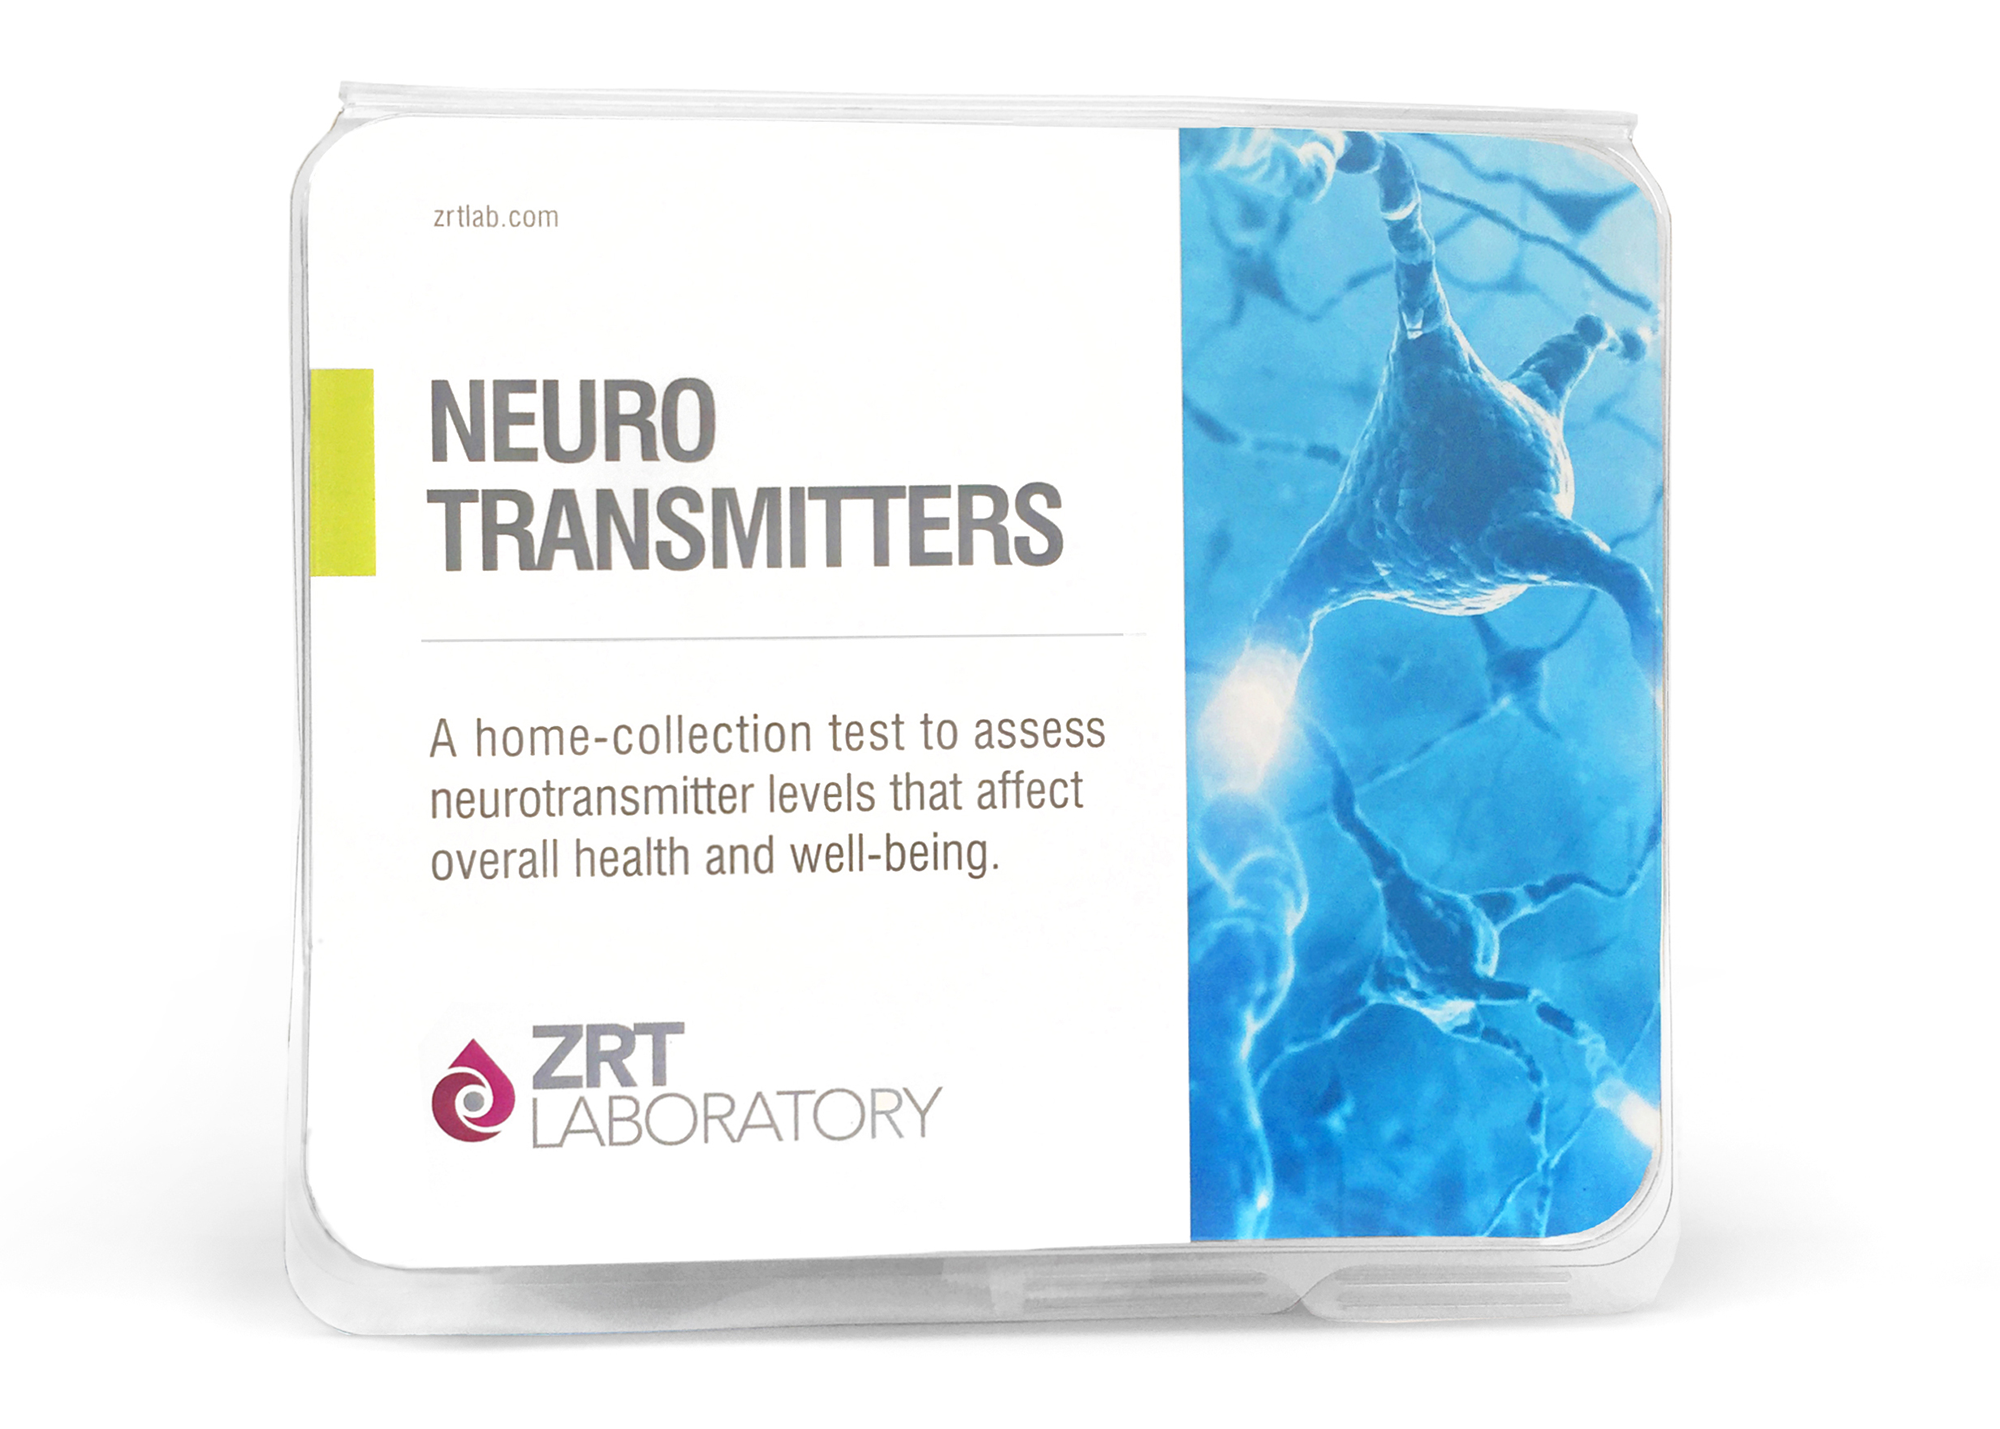 zrt-laboratory-neurotransmitters-kit__1_.png